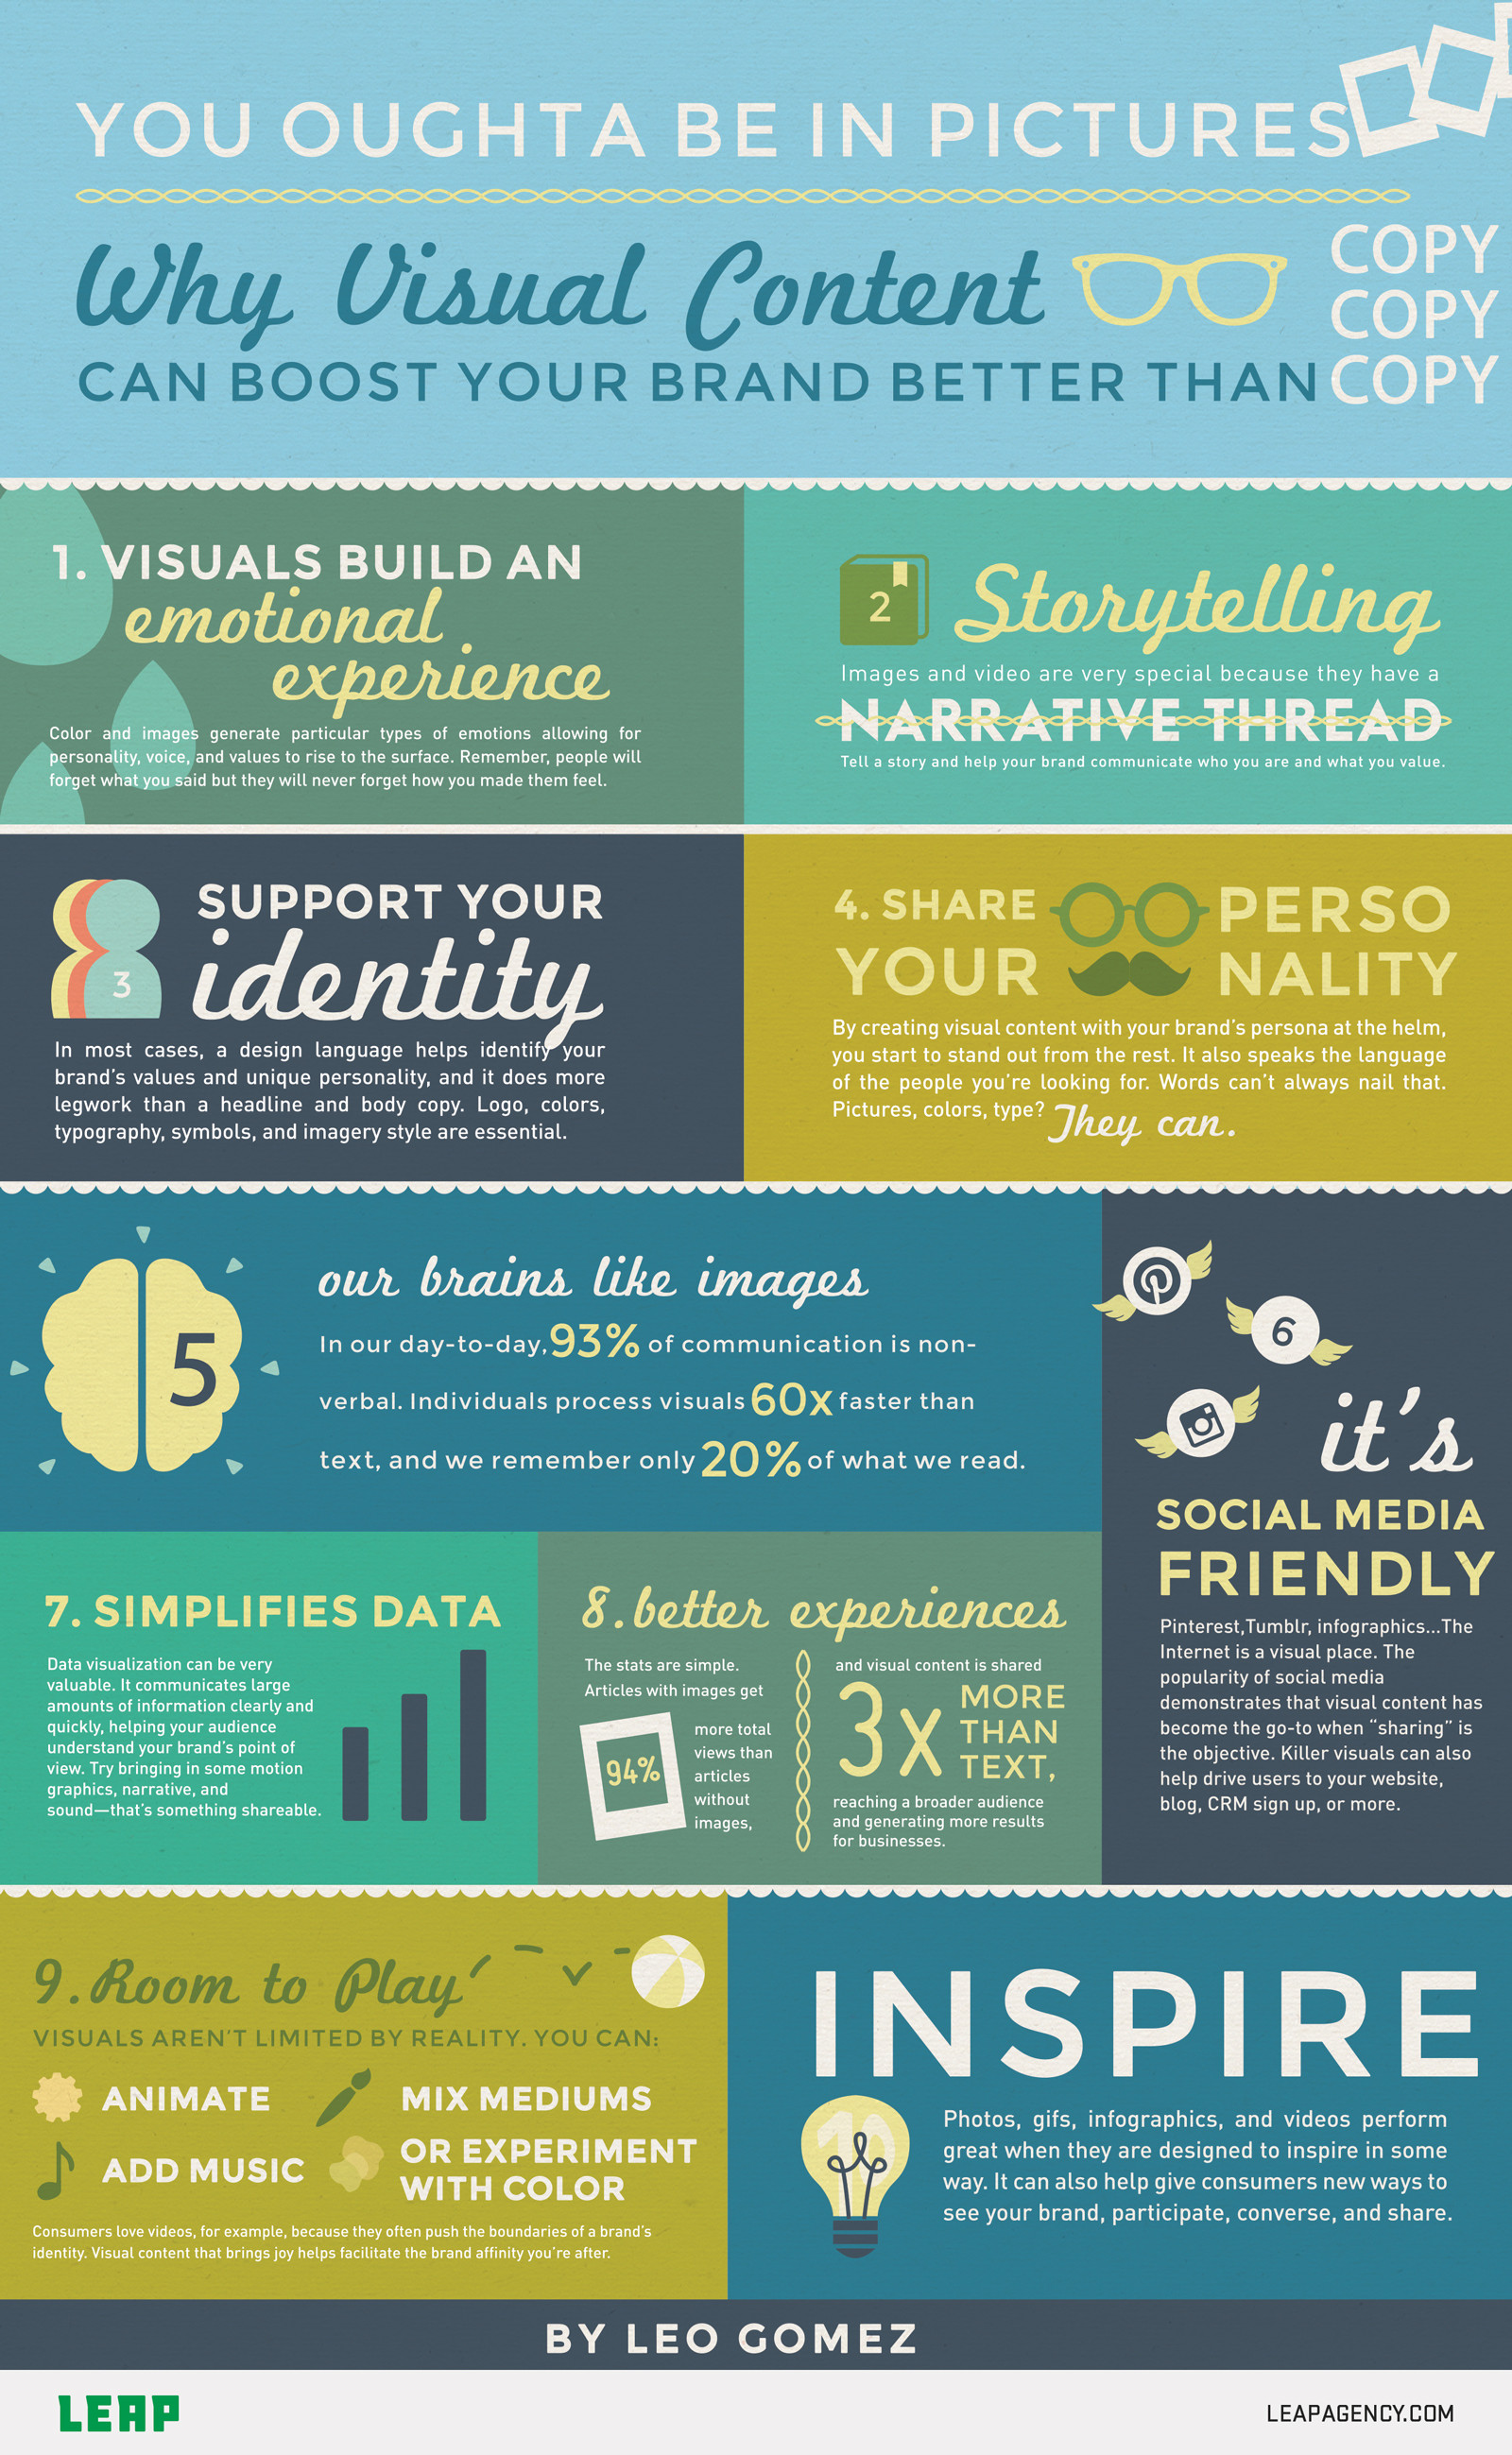 wersm leap agency why visual content can boost your brand better than copy infographic